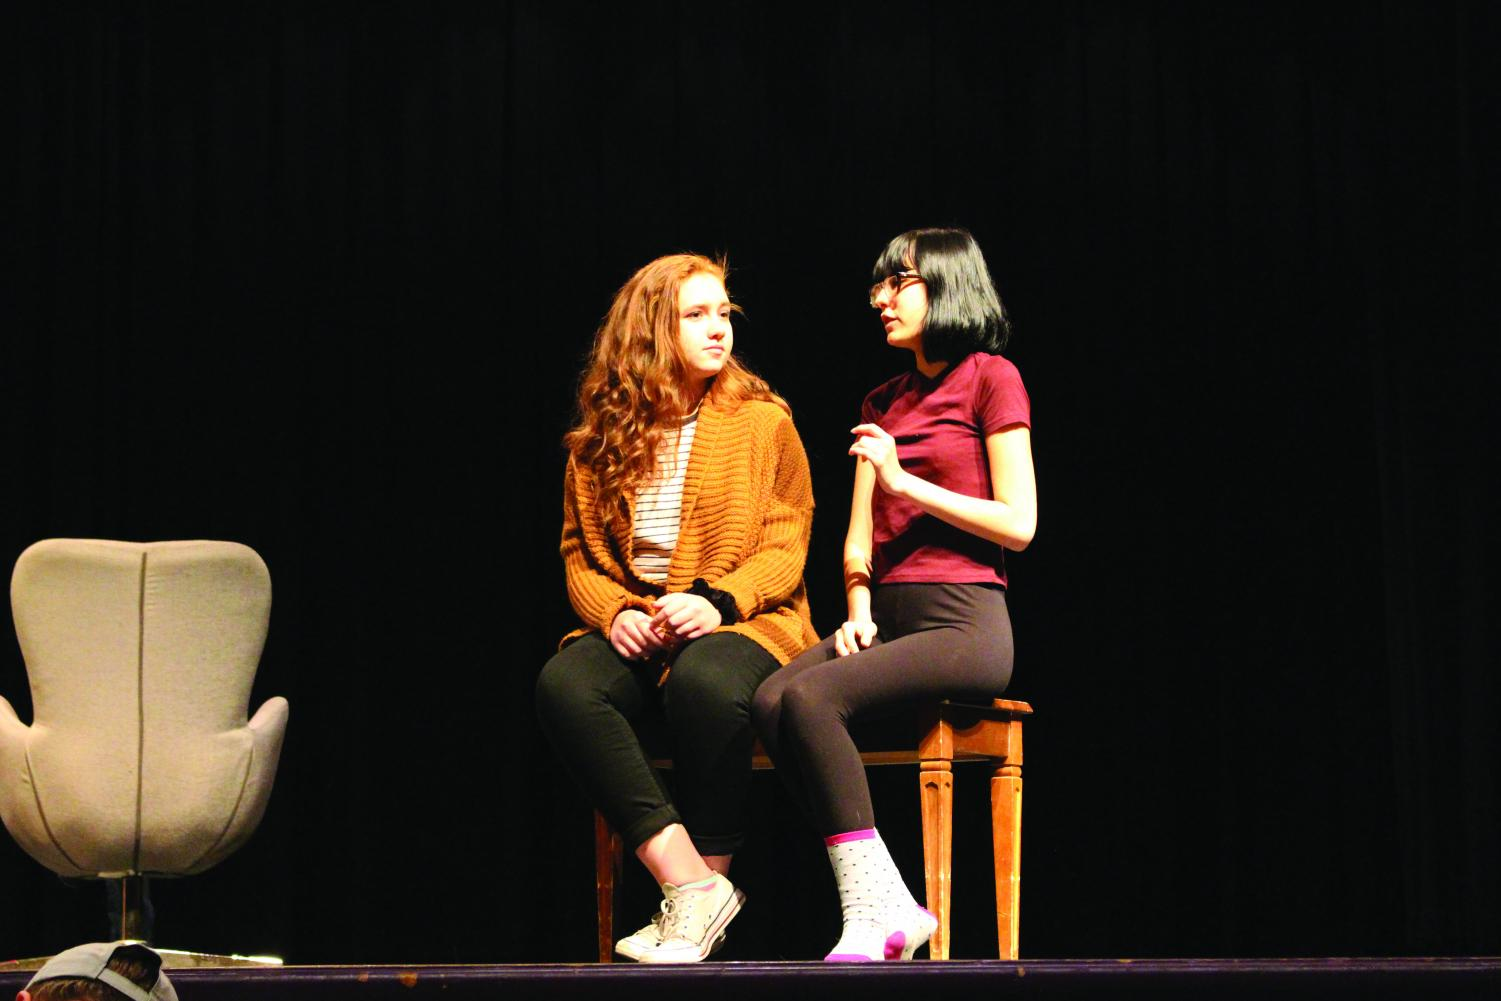 Camrynn Kernann and Trinity Nomee rehearse their scene together for LHS Drama Club's upcoming show, The Importance of Being Earnest. Photo by Josie Hafer.